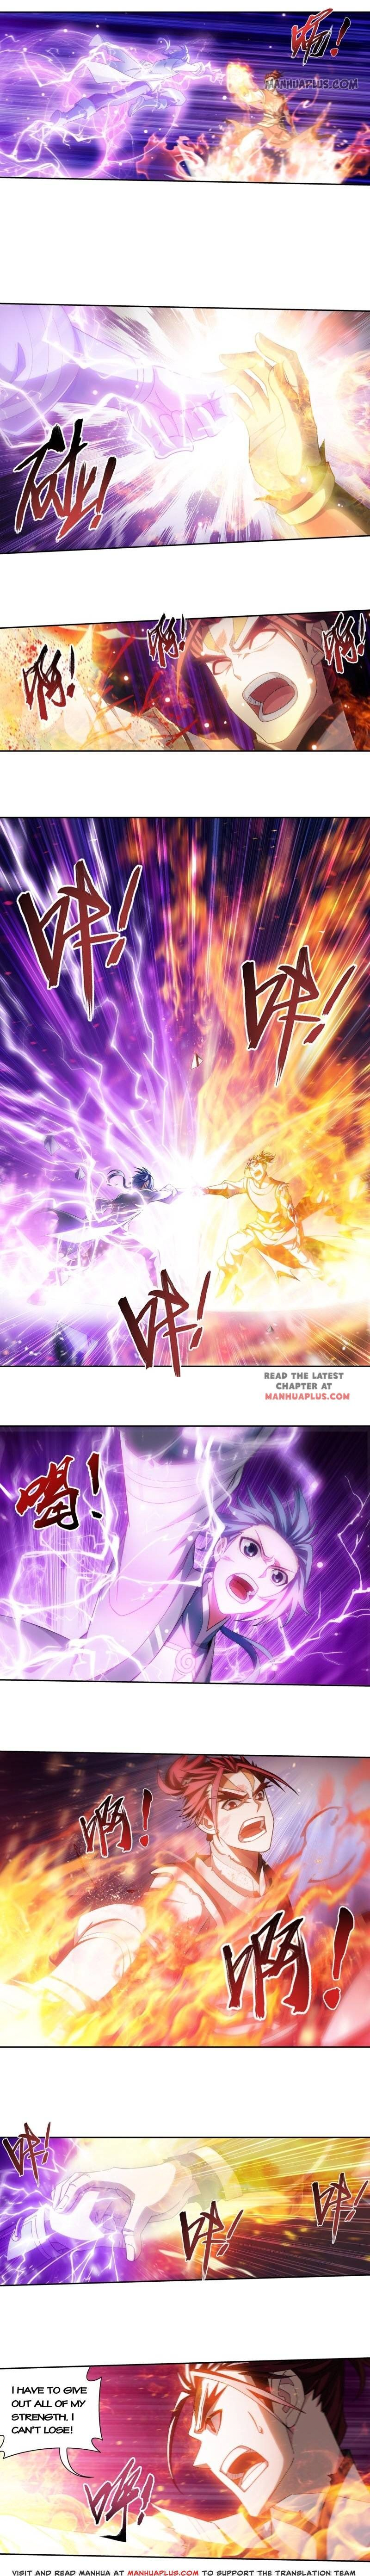 The Great Ruler ch.167